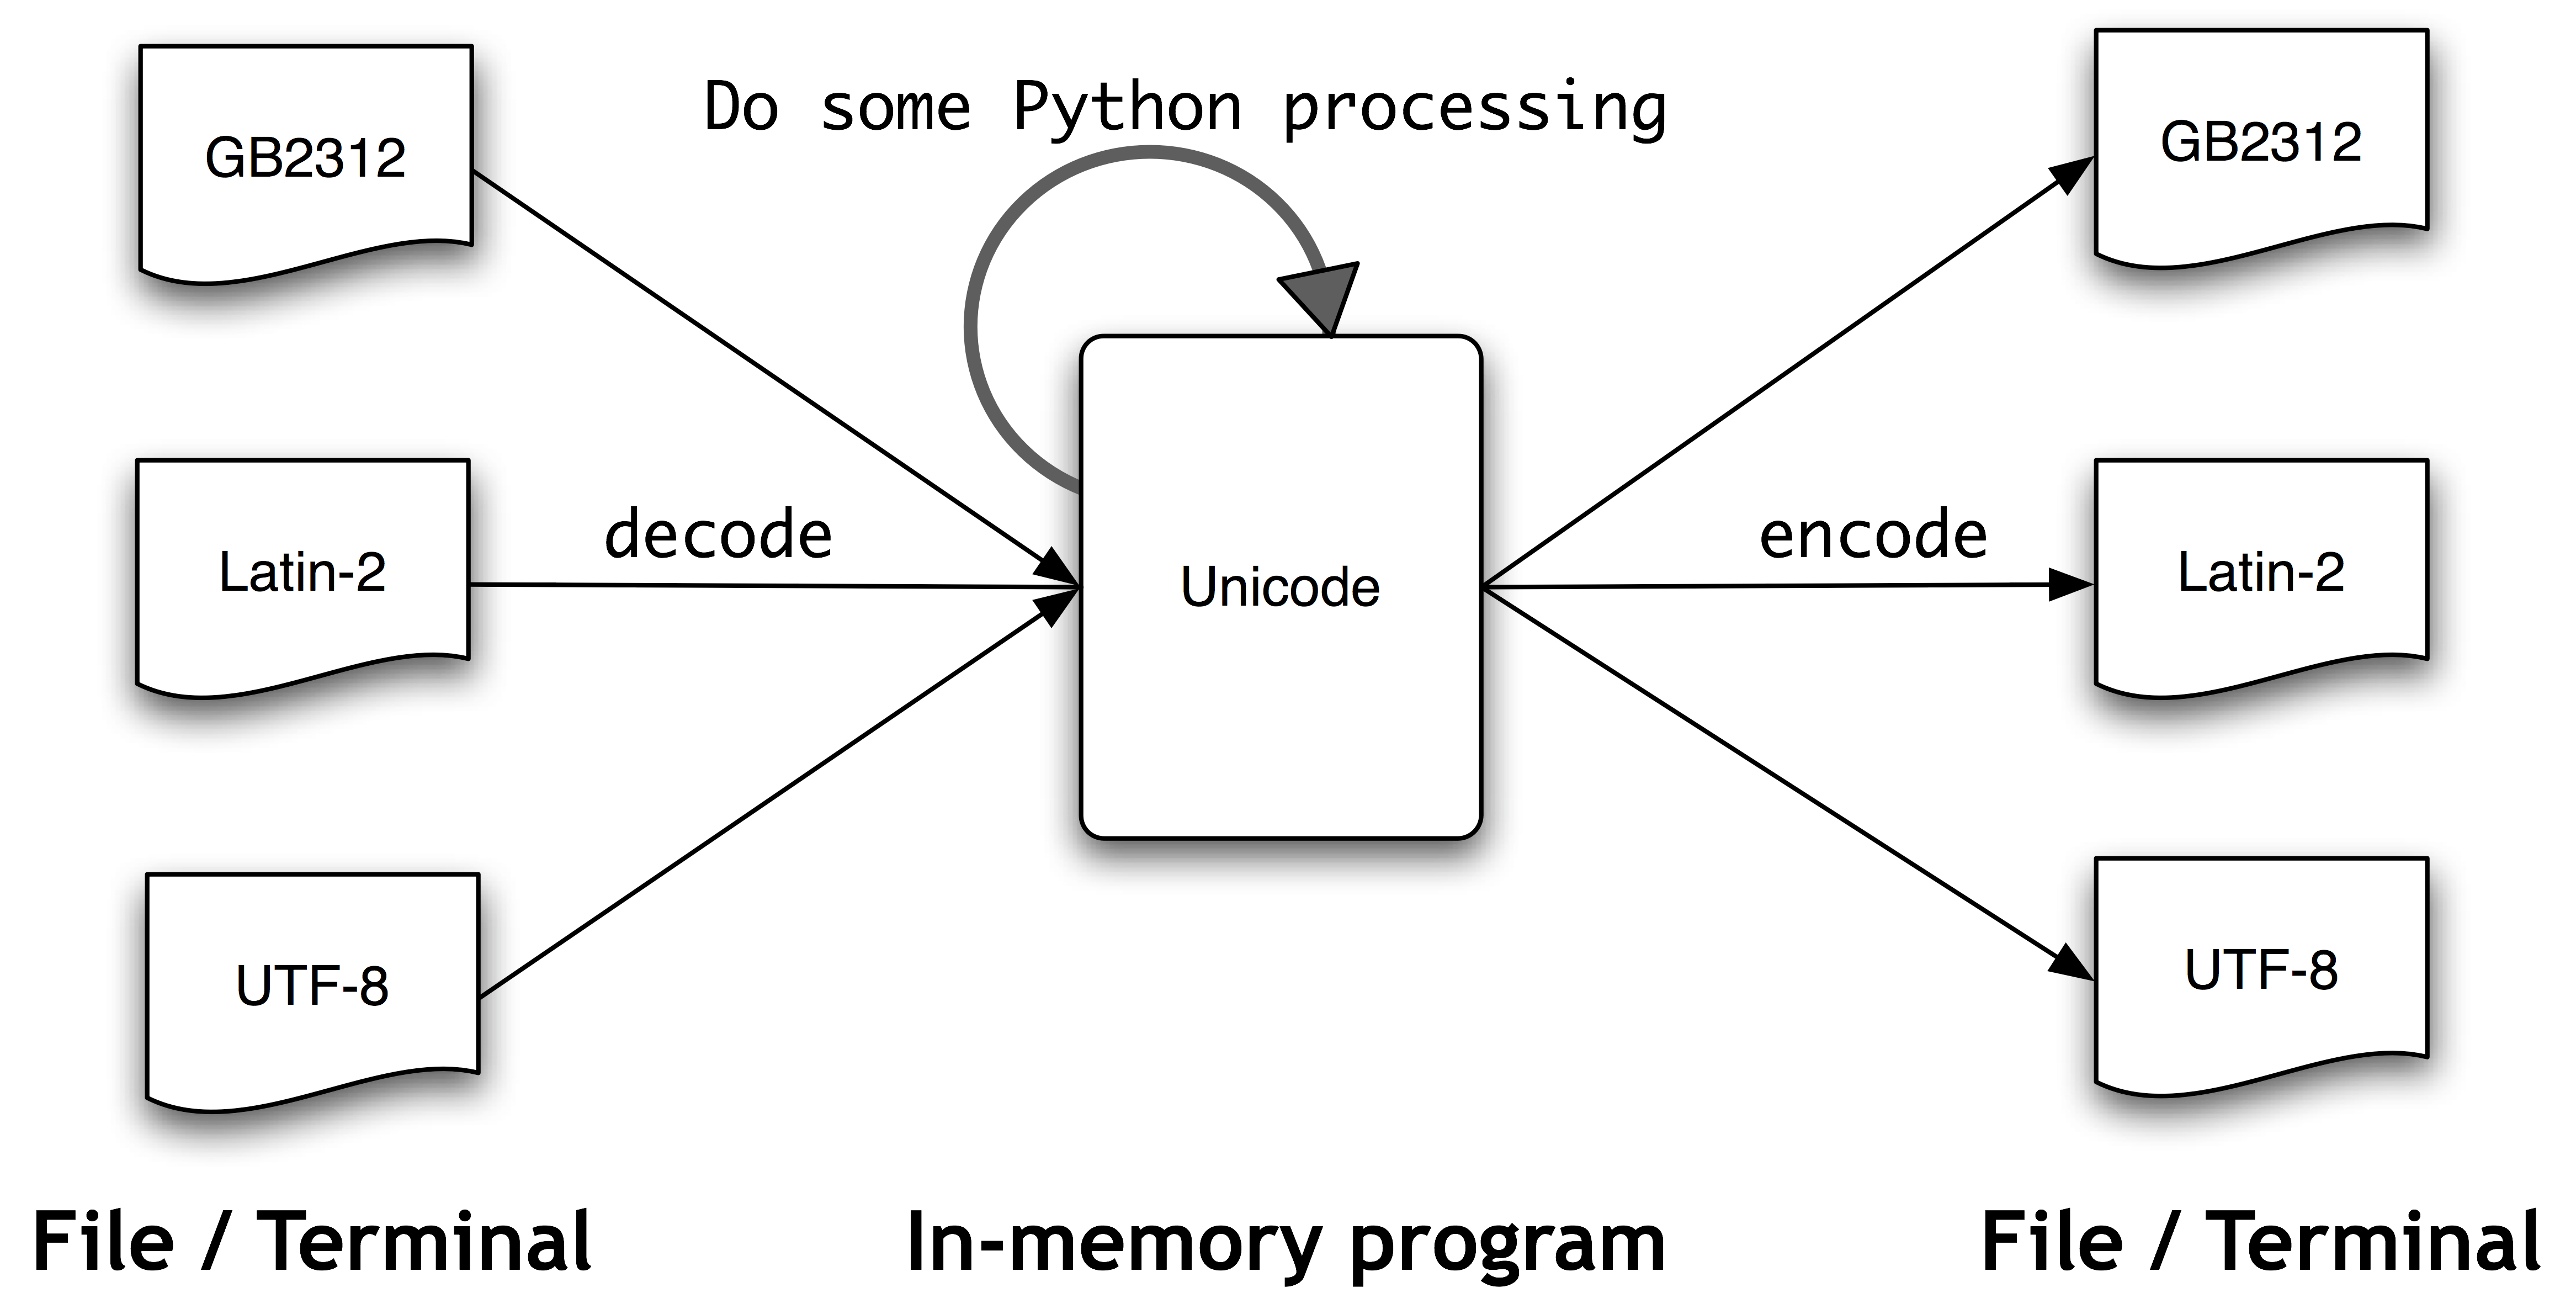 ../images/unicode.png